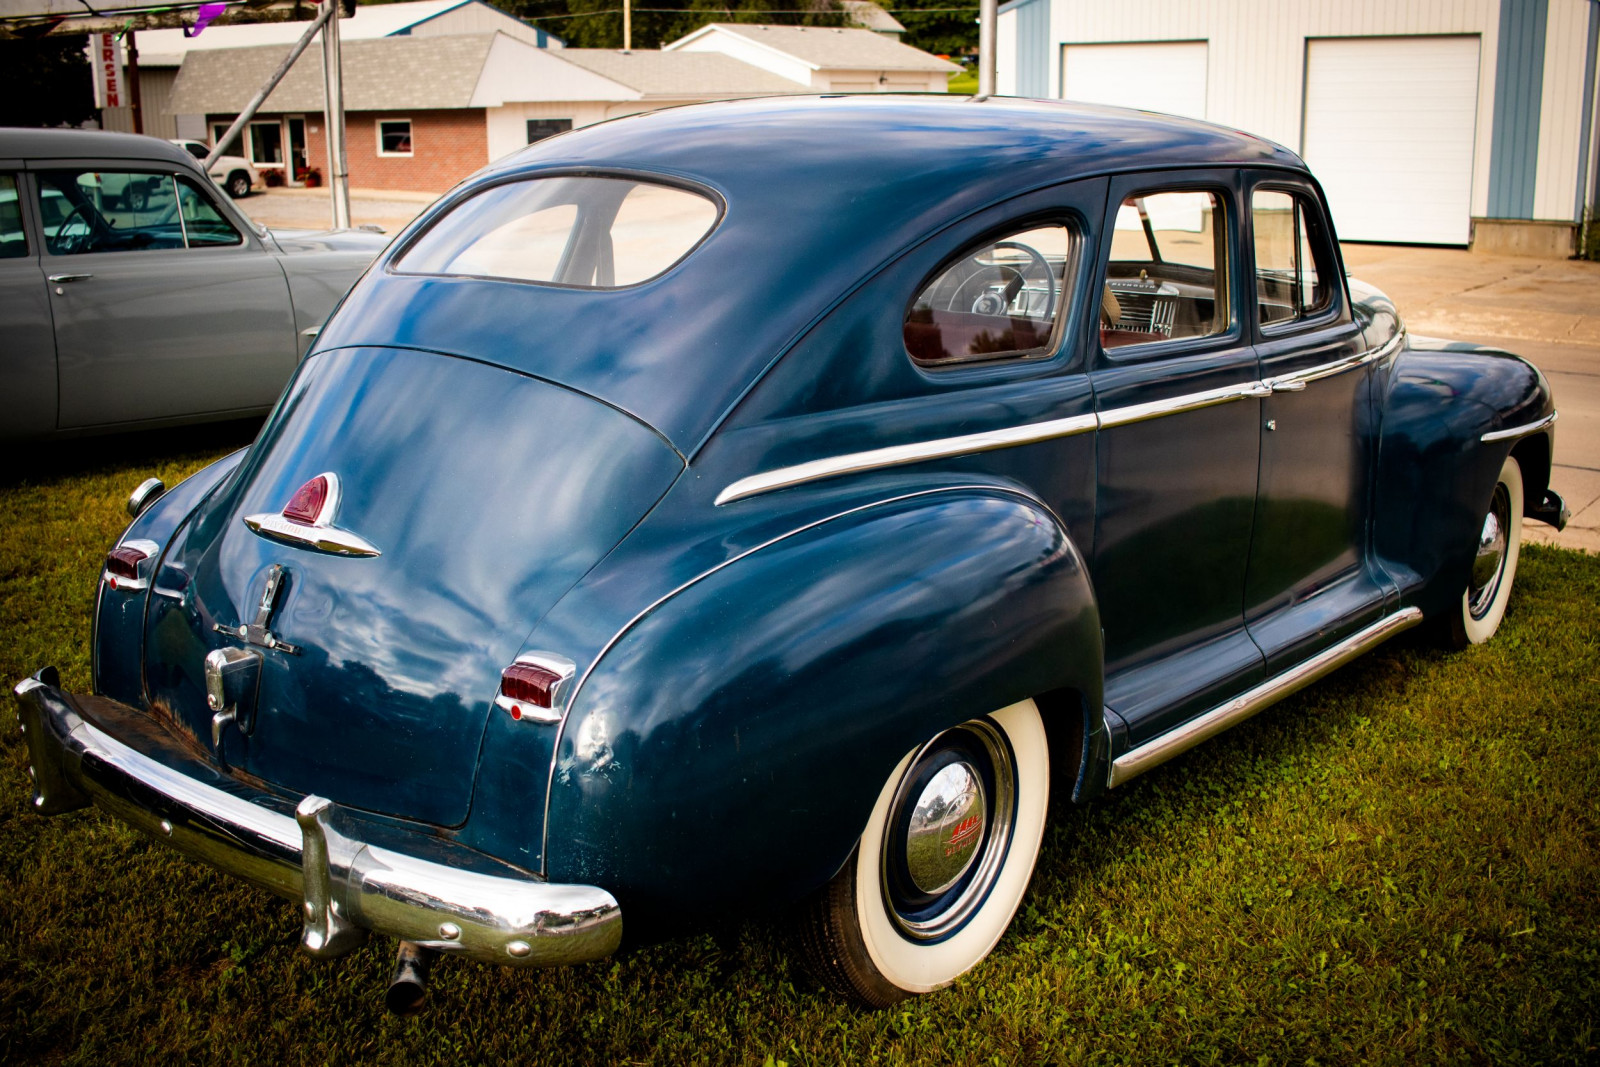 1947 Plymouth Special Deluxe  P15 4dr Sedan - Image 5